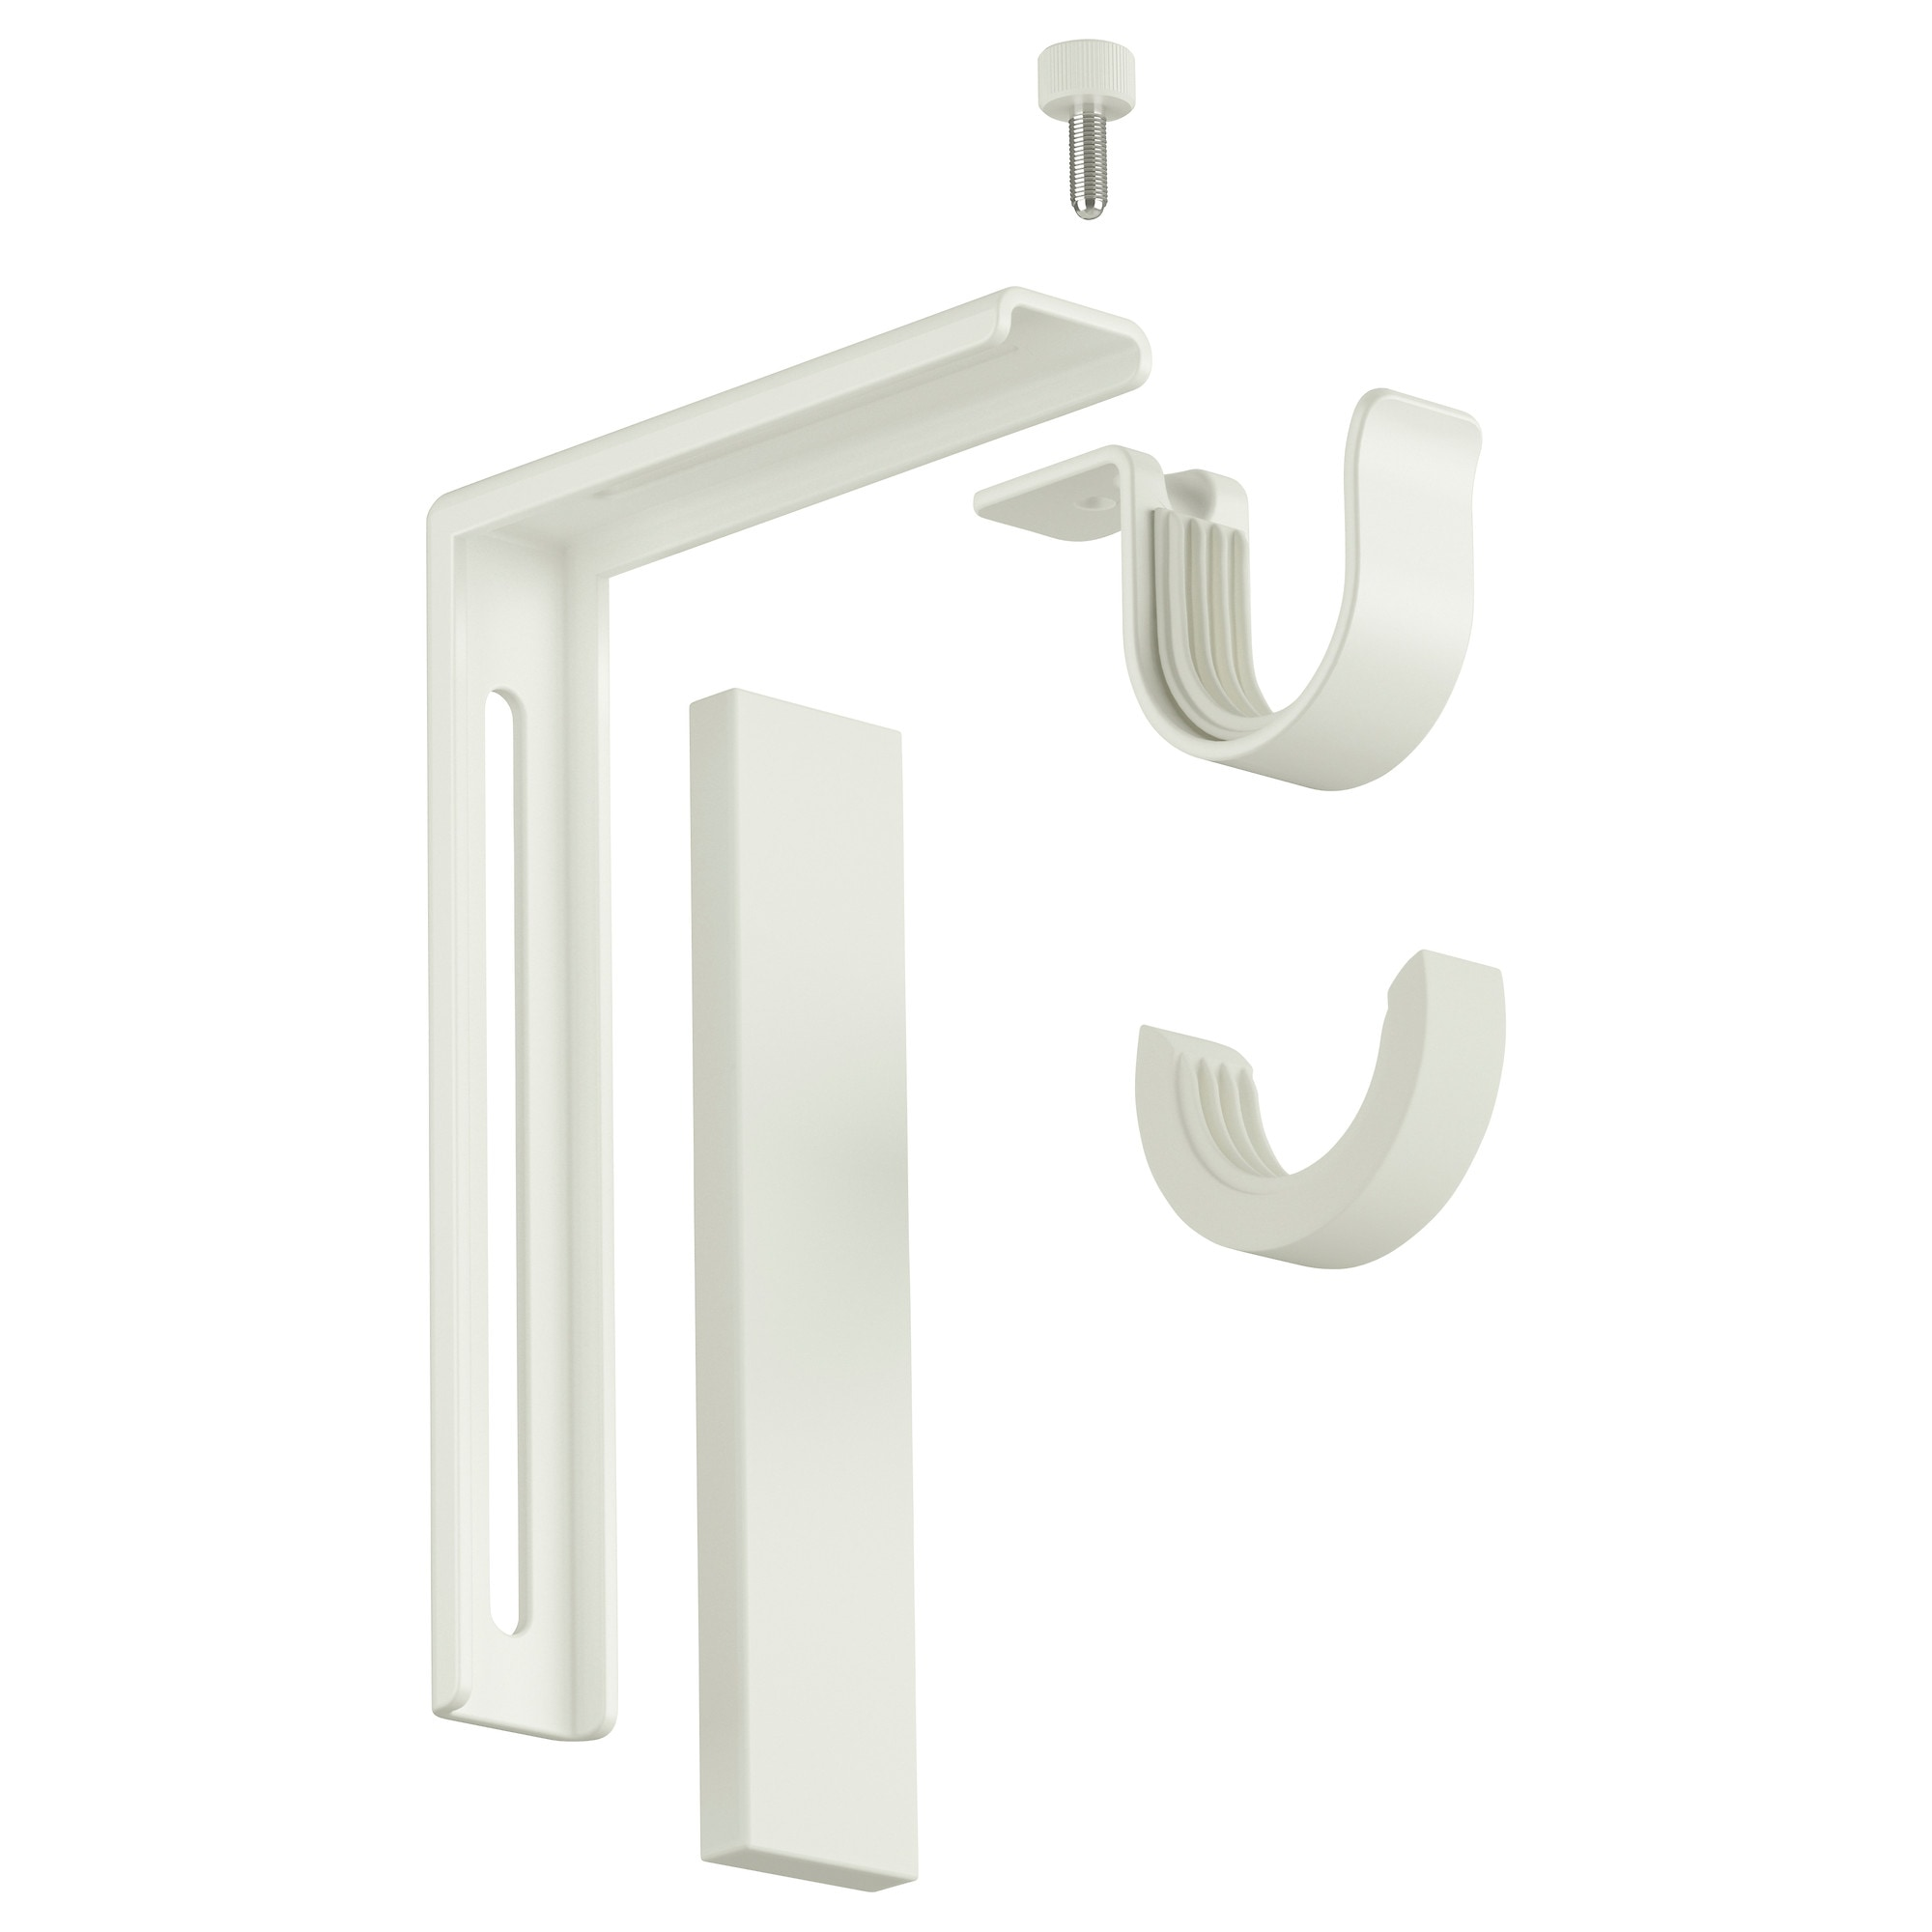 Ceiling mounted curtain rod brackets - Ceiling Mounted Curtain Rod Brackets 37